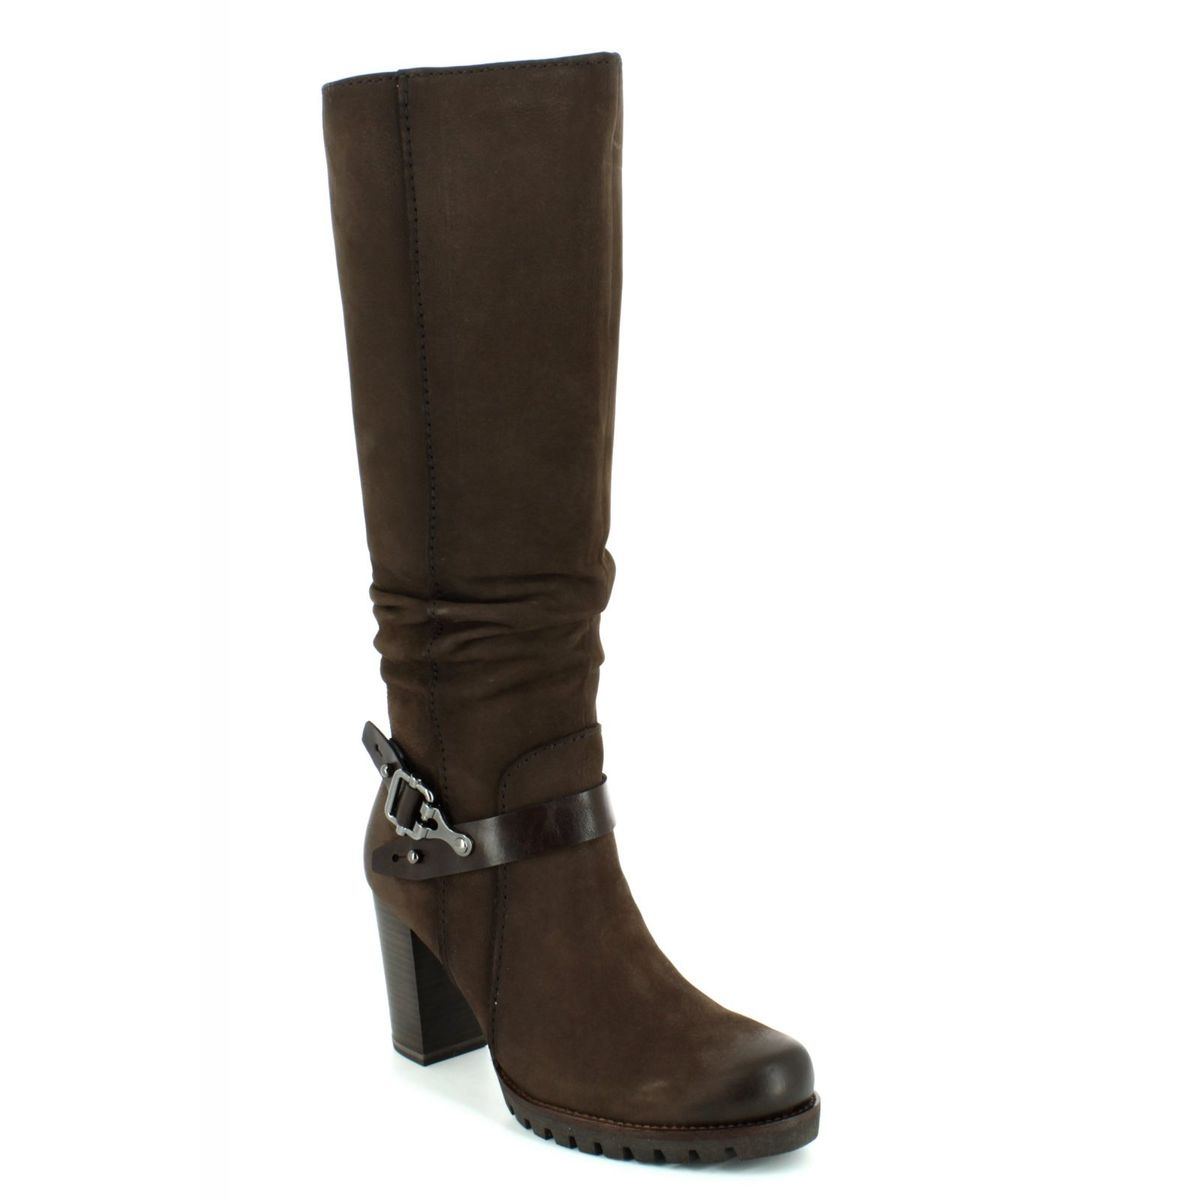 5ae6179f715 Marco Tozzi Knee-high Boots - Brown - 25614 325 BULLA